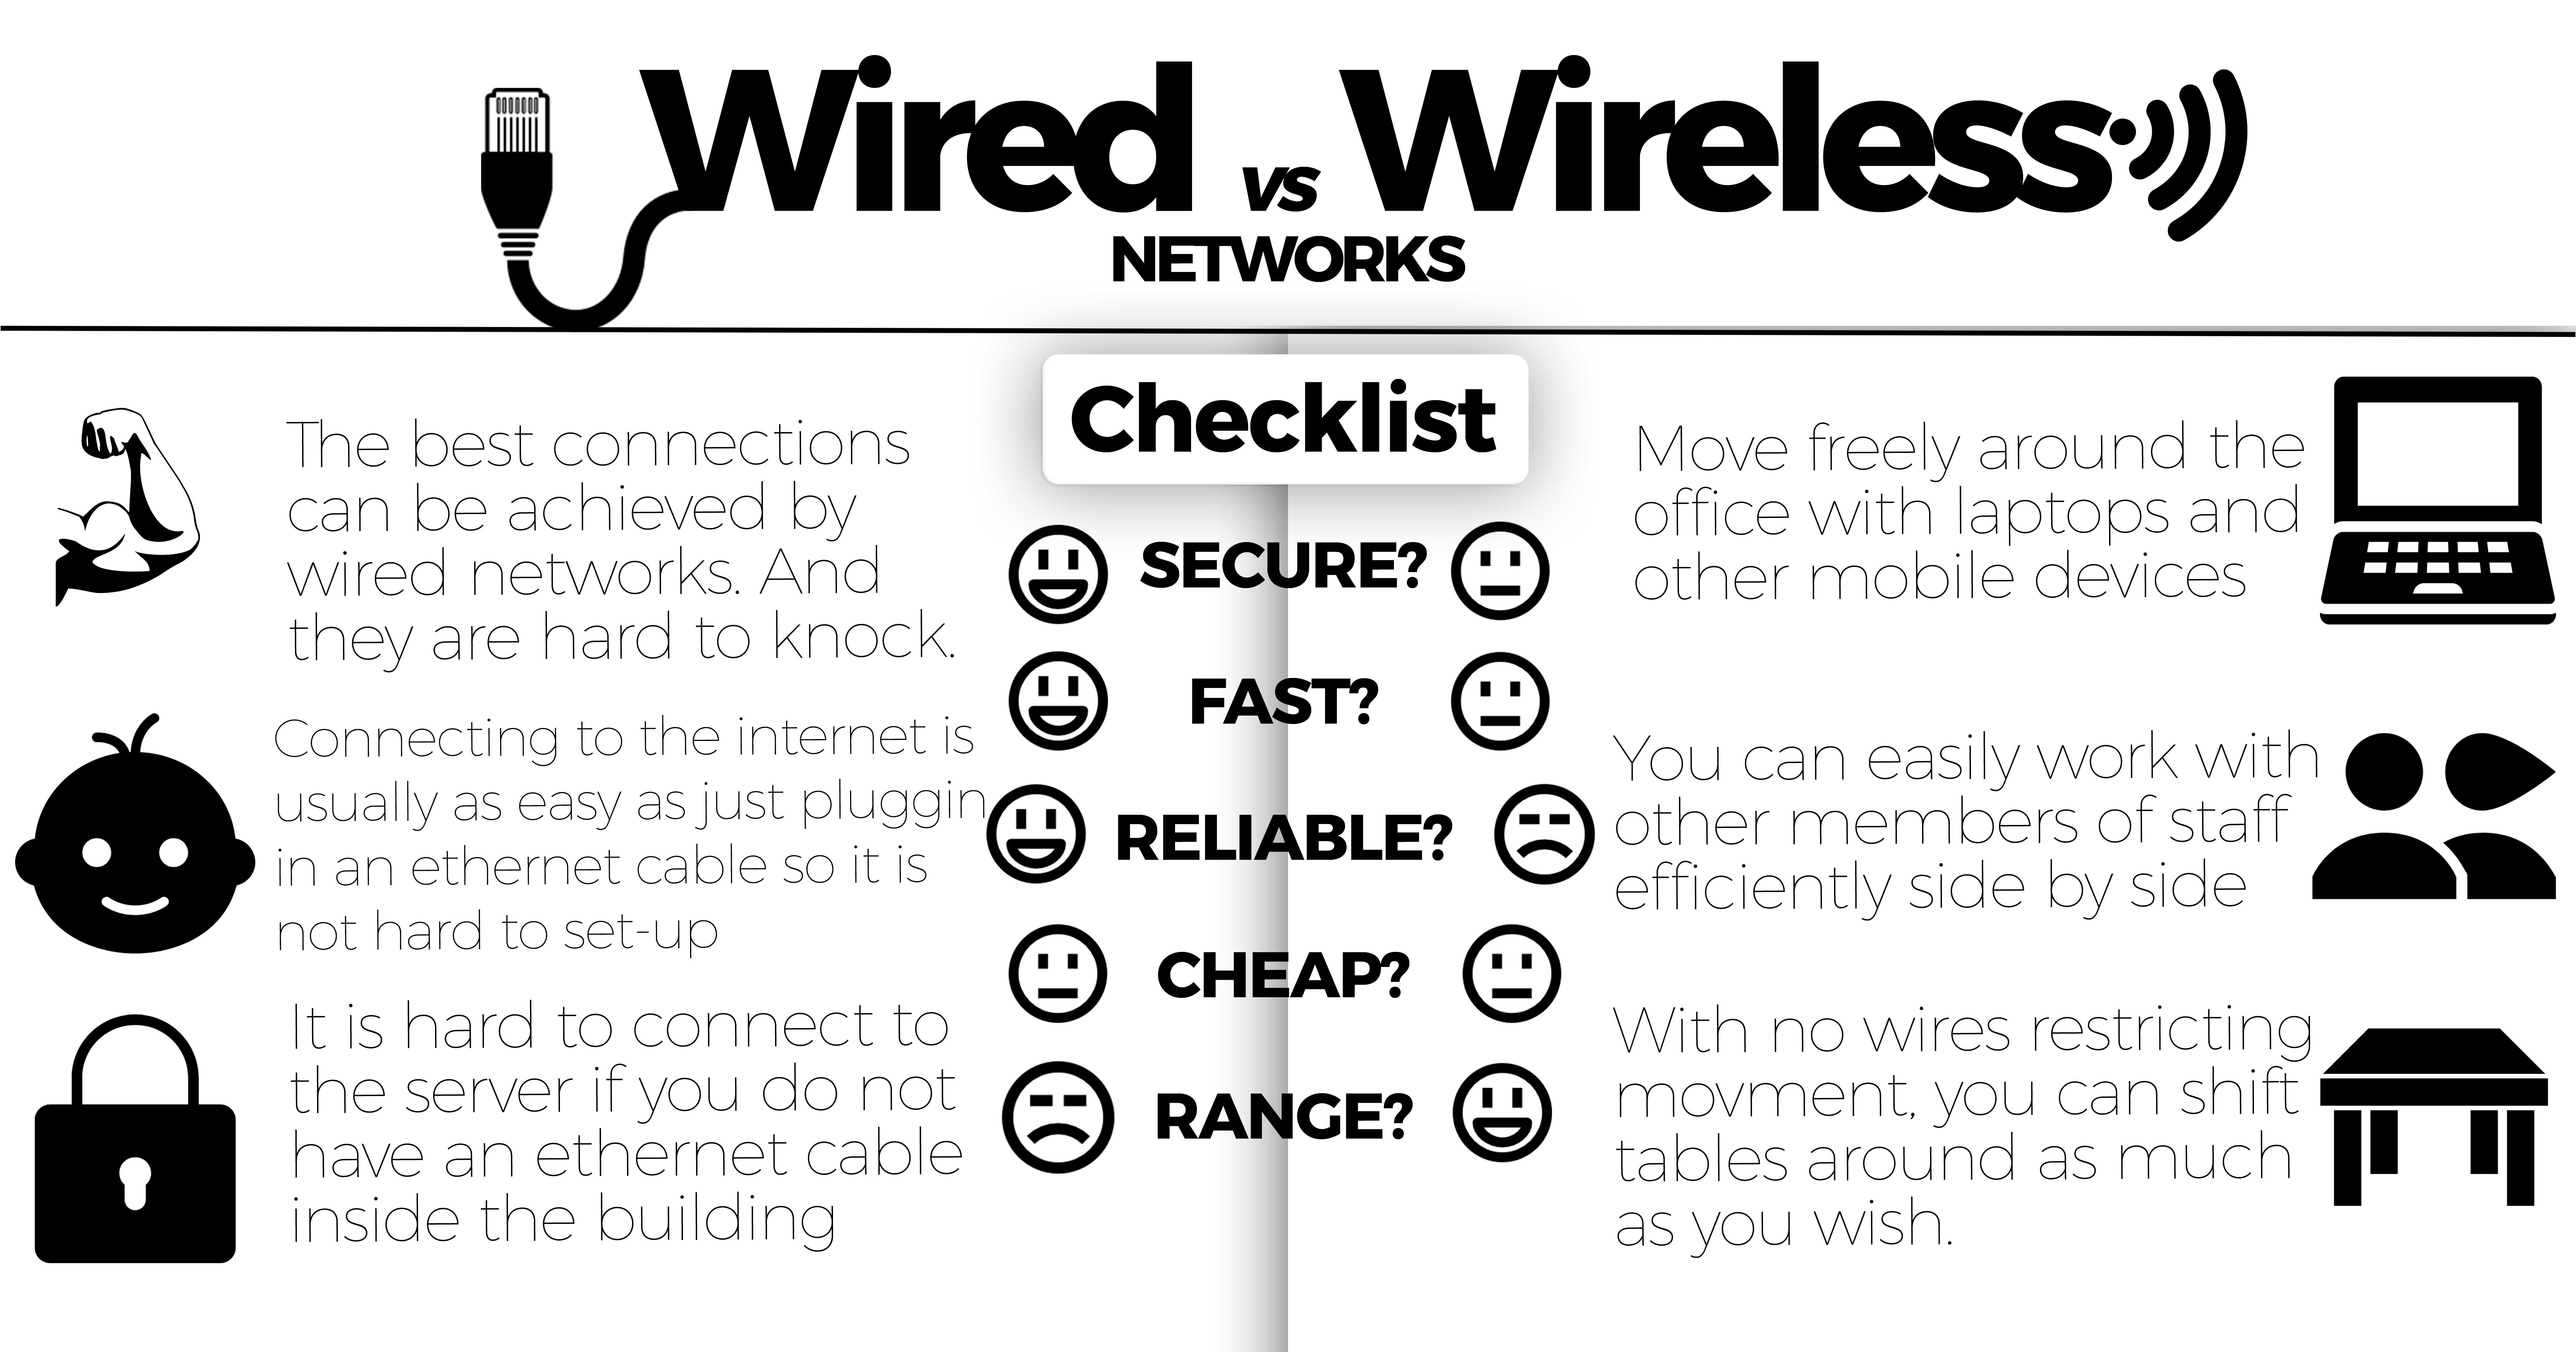 Wired V Wireless